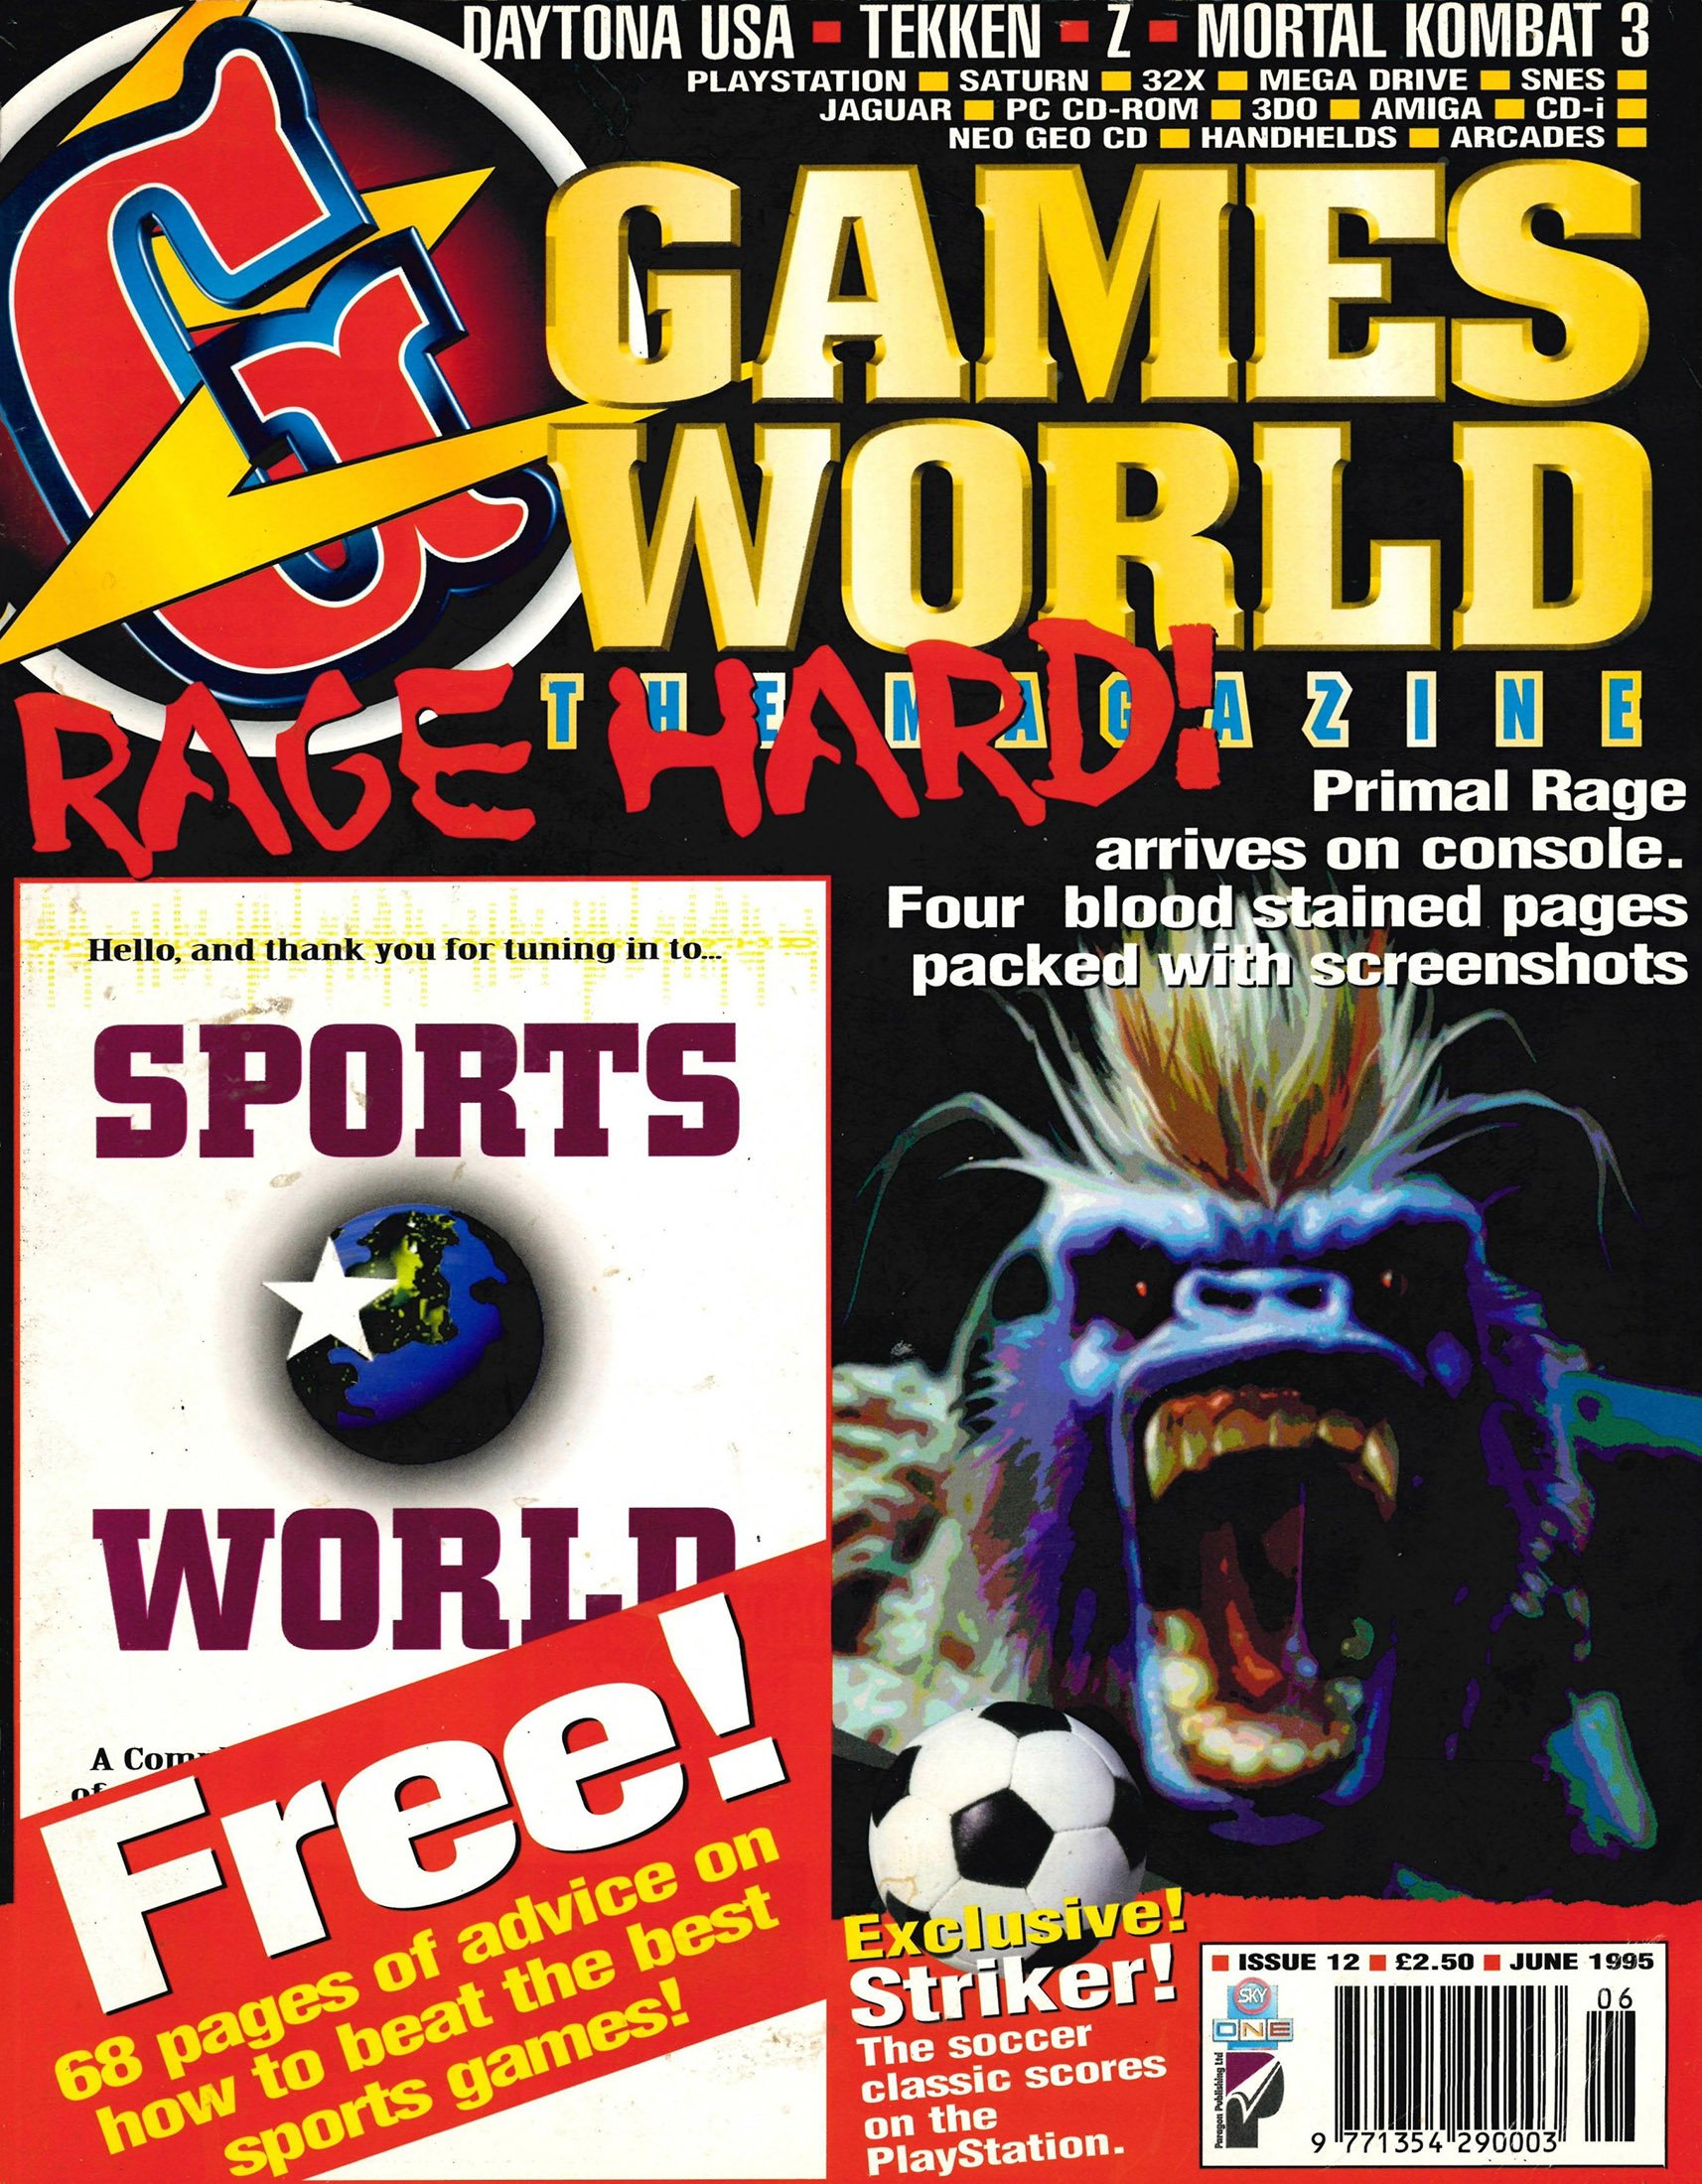 Games World Issue 12 (June 1995)